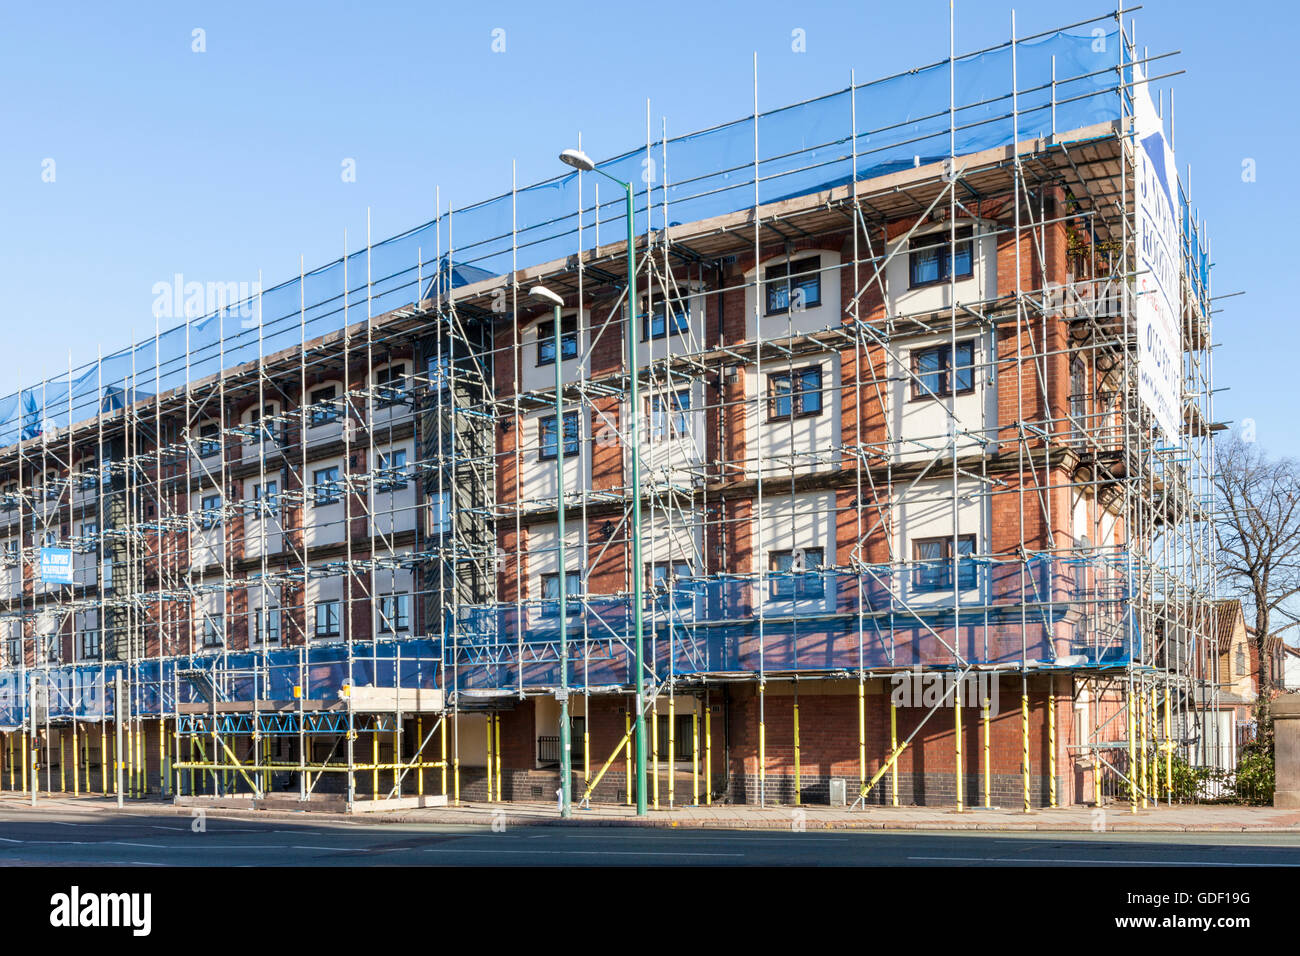 Scaffolding on all sides of a residential building, Nottingham, England, UK - Stock Image